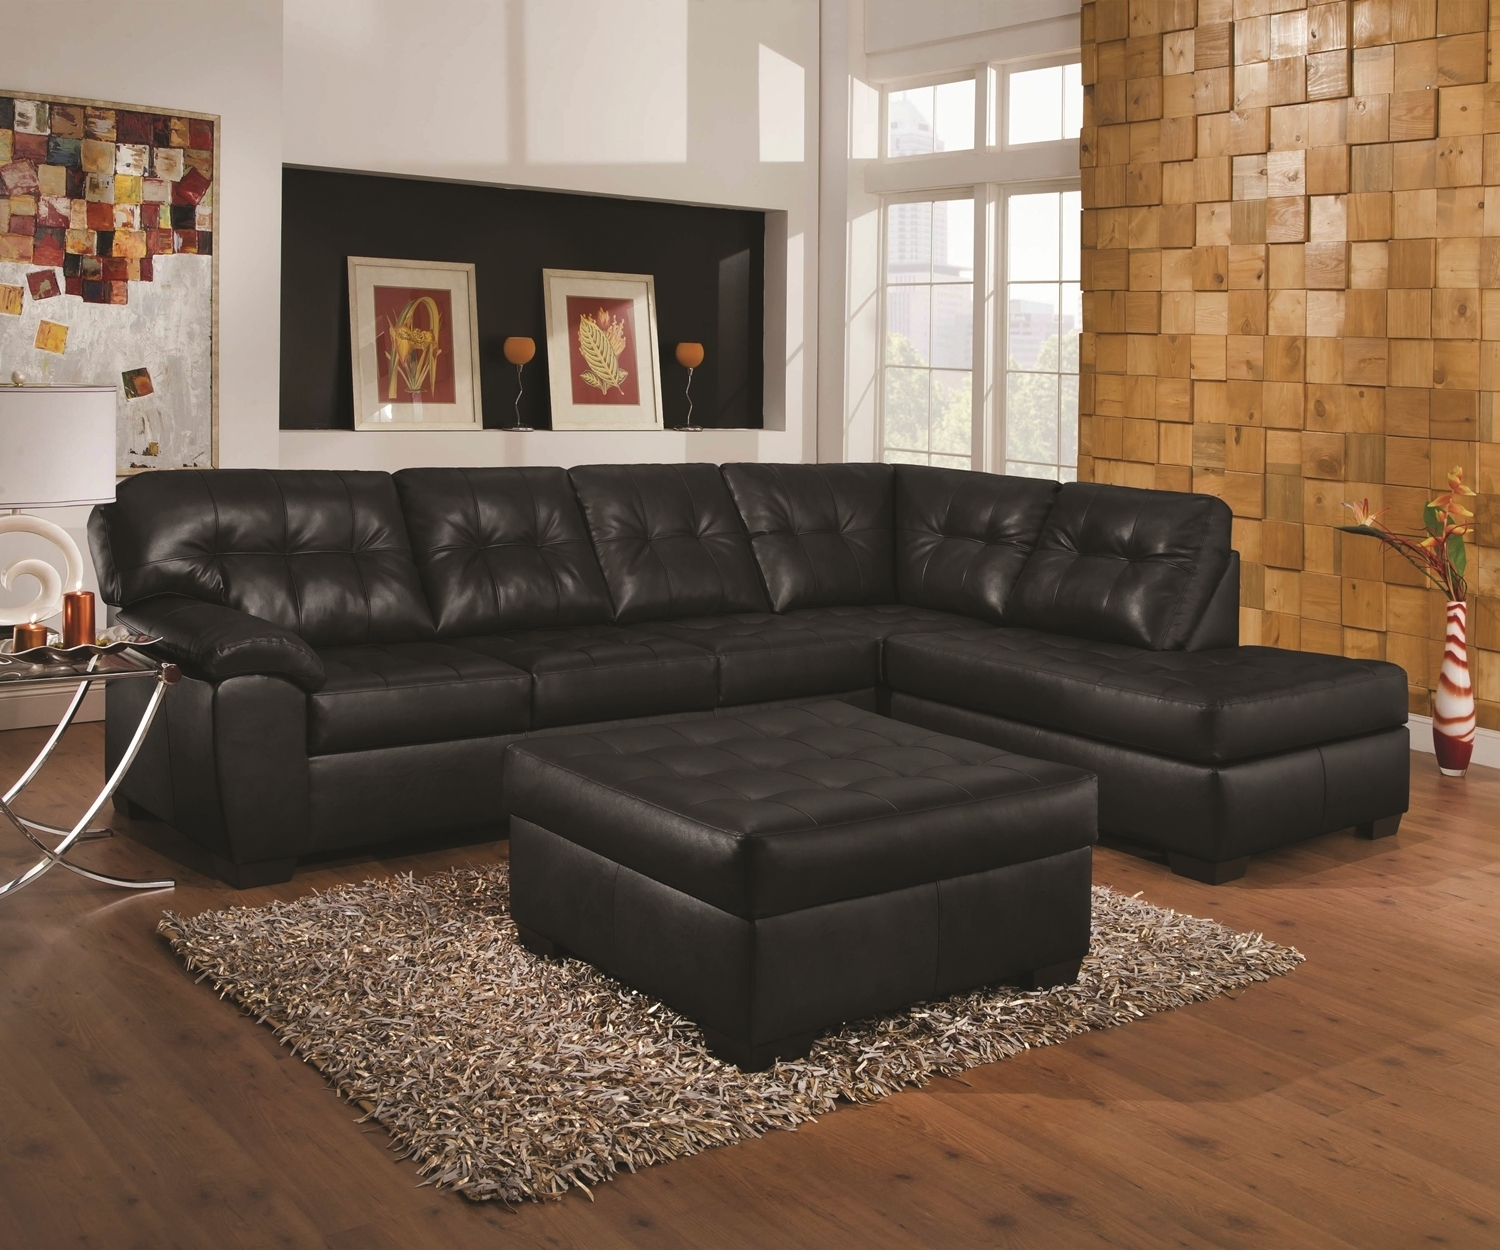 9569 Soho Onyx [9569 Soho Onyx] – $869 : All Things Delivered, Dfw With Evan 2 Piece Sectionals With Raf Chaise (Image 3 of 25)